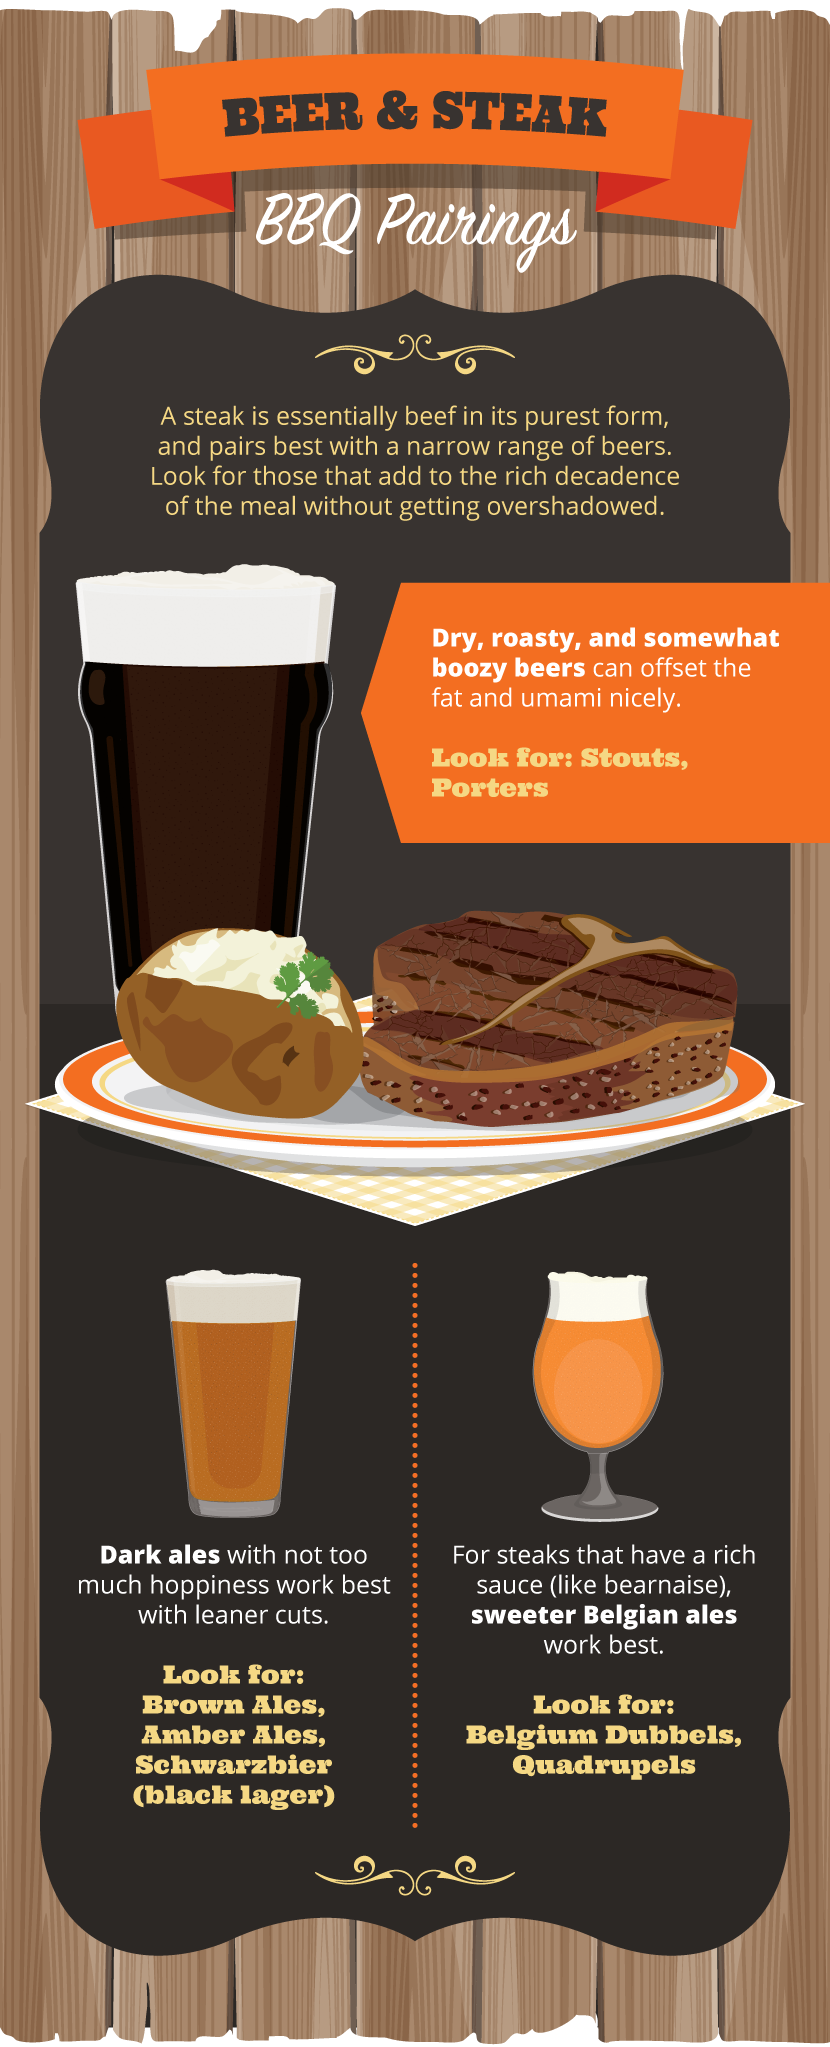 beer and steak bbq parings infographic TailgateMaster.com